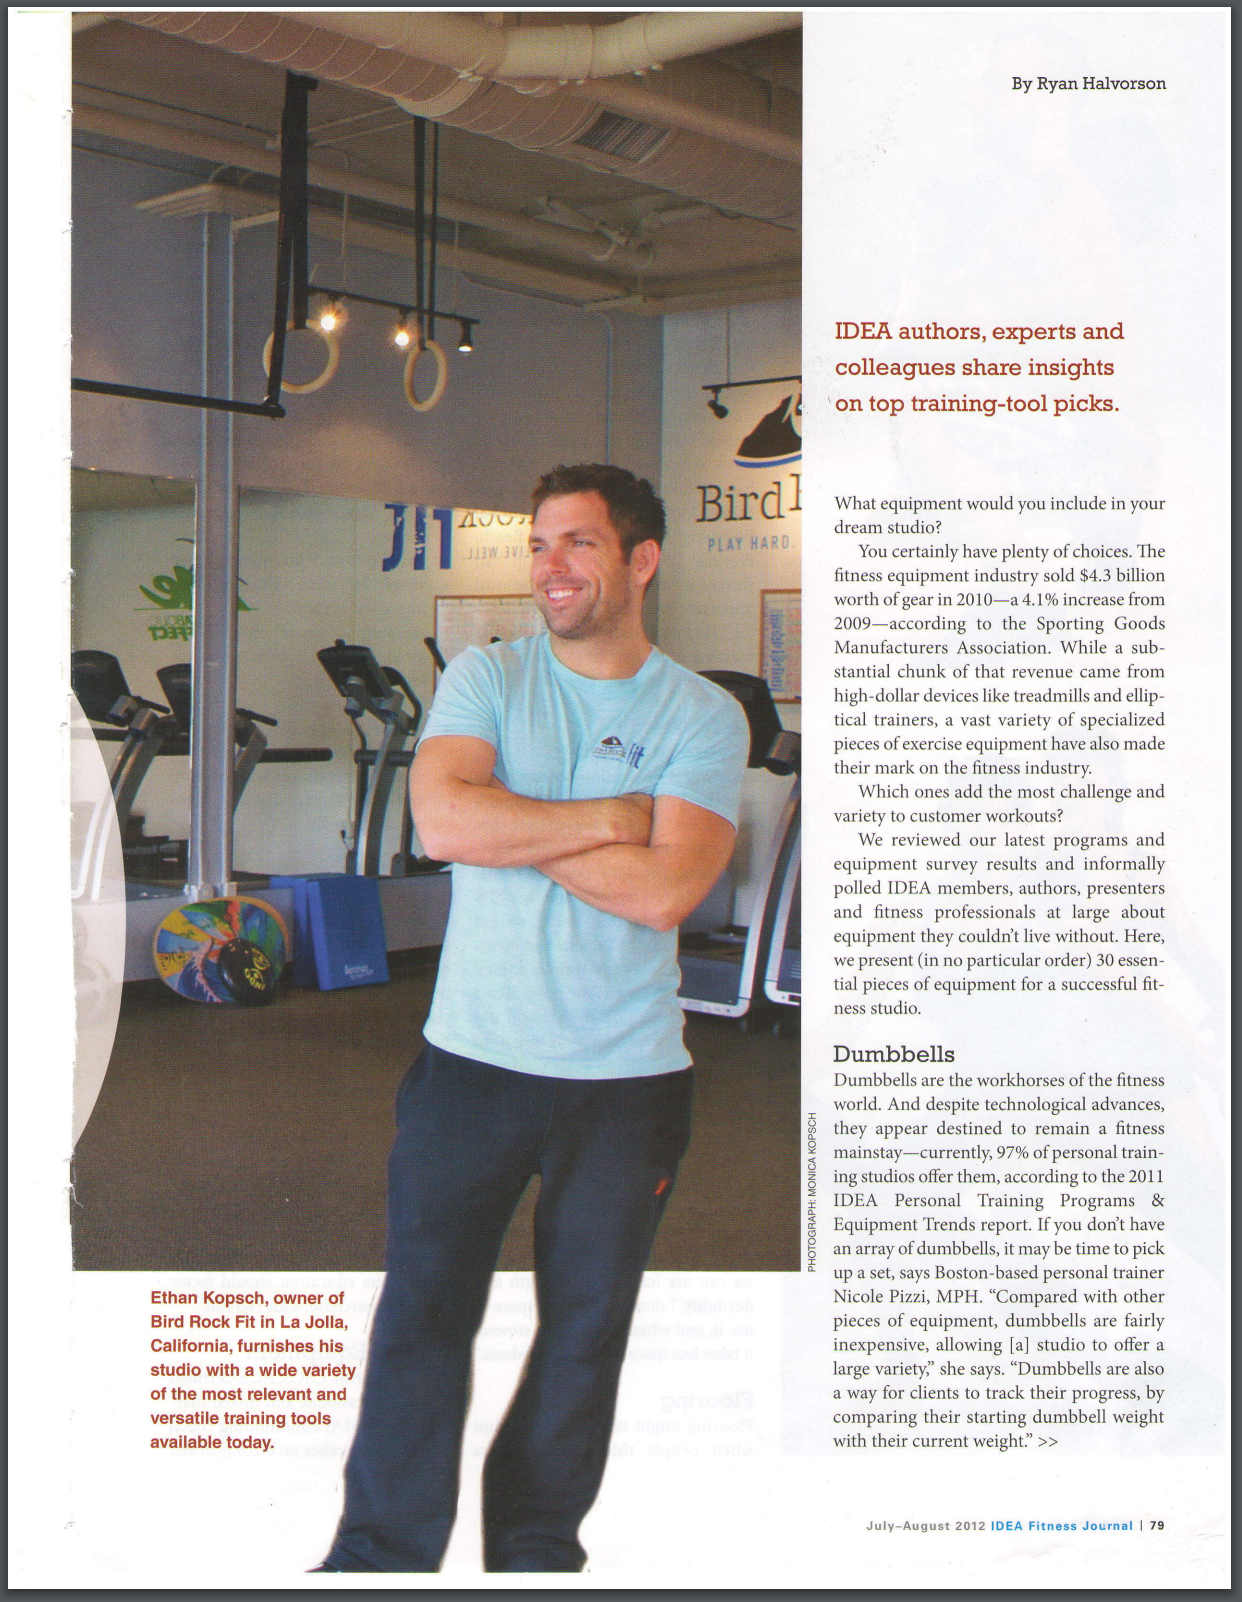 IDEA FITNESS JOURNAL, JULY 2012: 30 Essential Pieces of Equipment for a Successful Training Studio